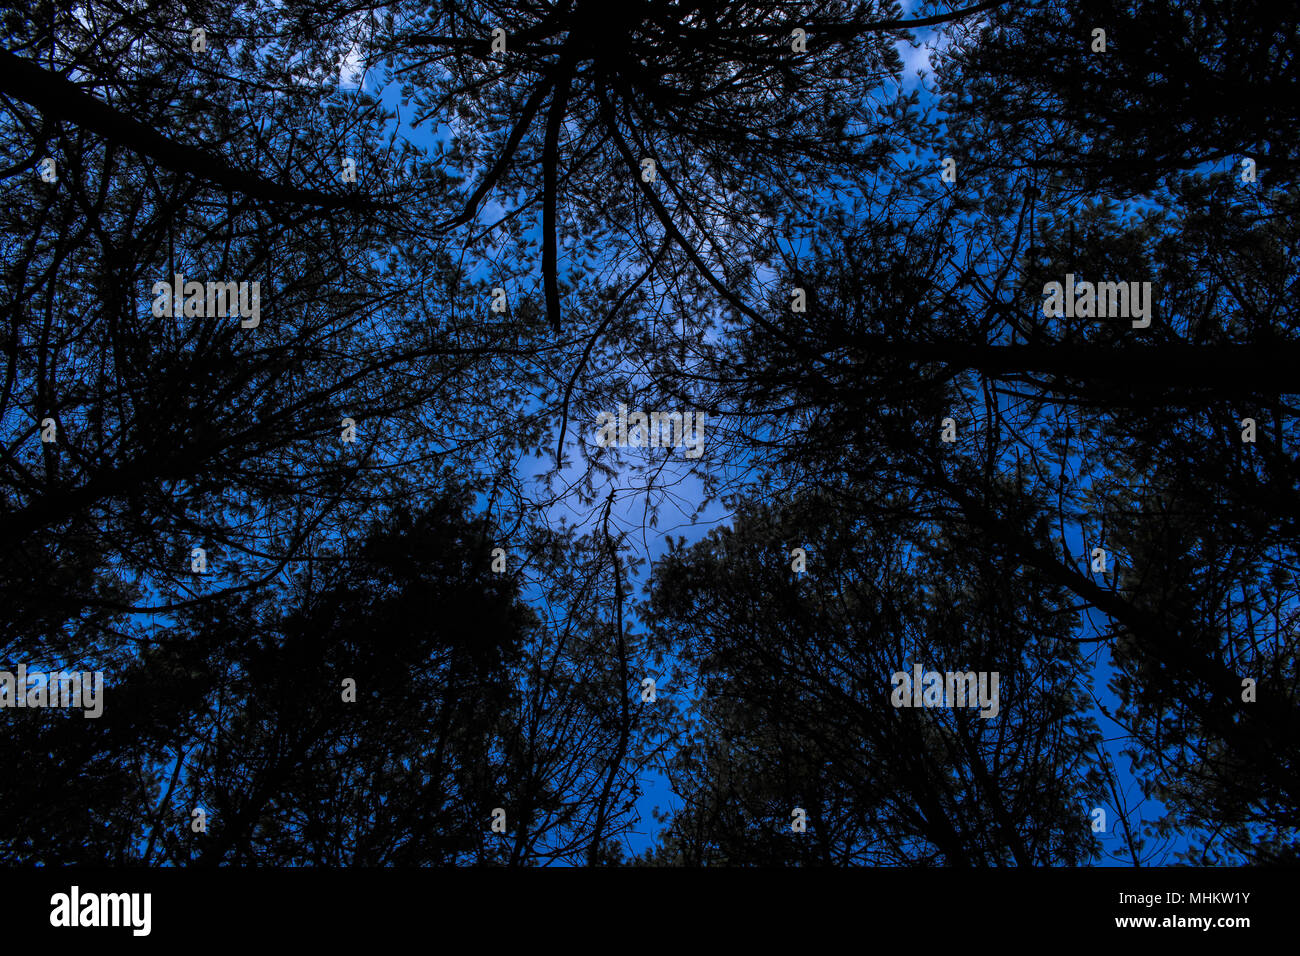 Dark trees silhouetted against a stormy sky seen from below image depicting evil - Stock Image